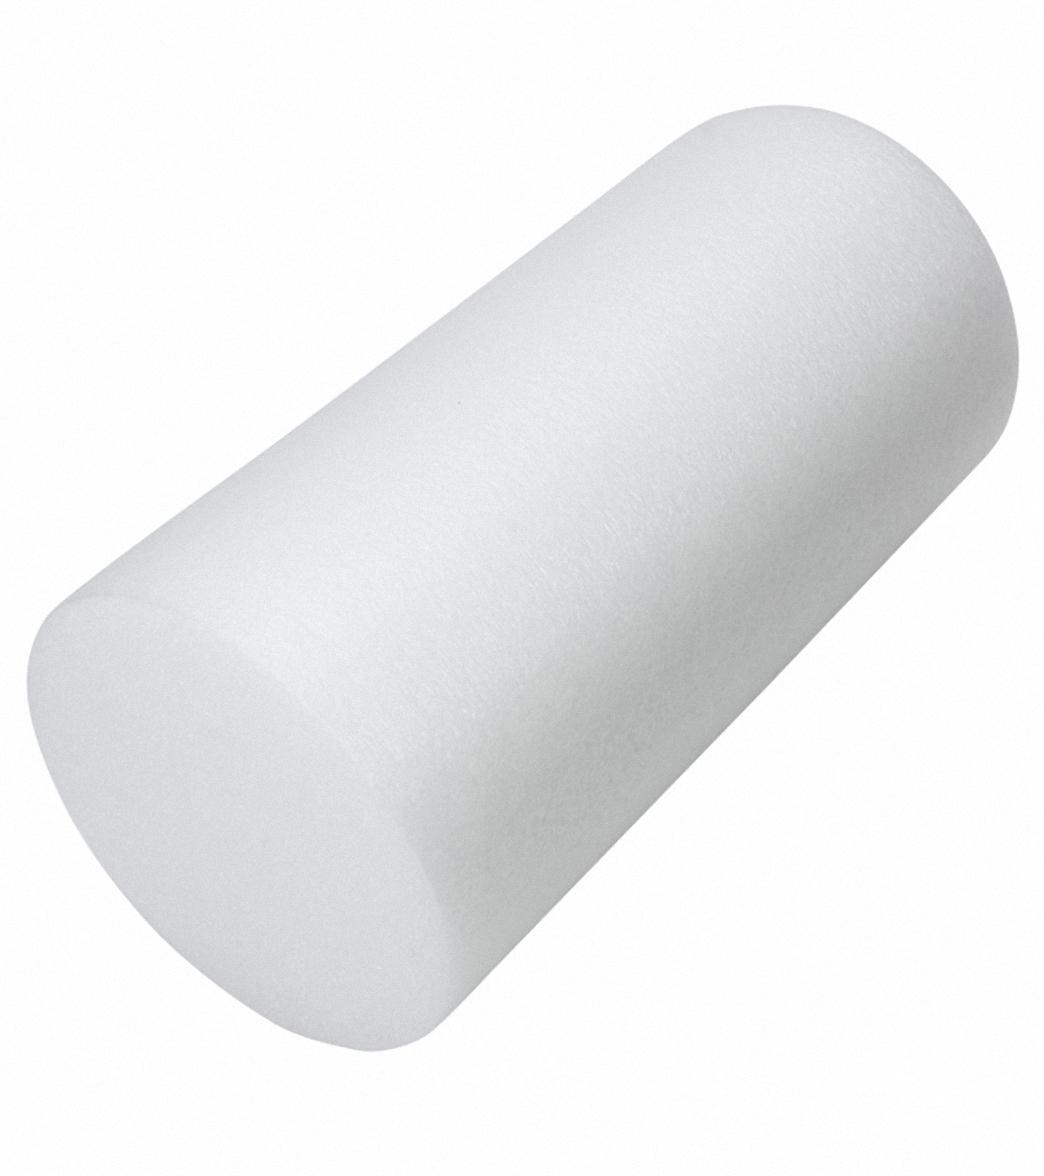 "Body Sport Full Foam Roller, 6"" X 12"", Latex Free"